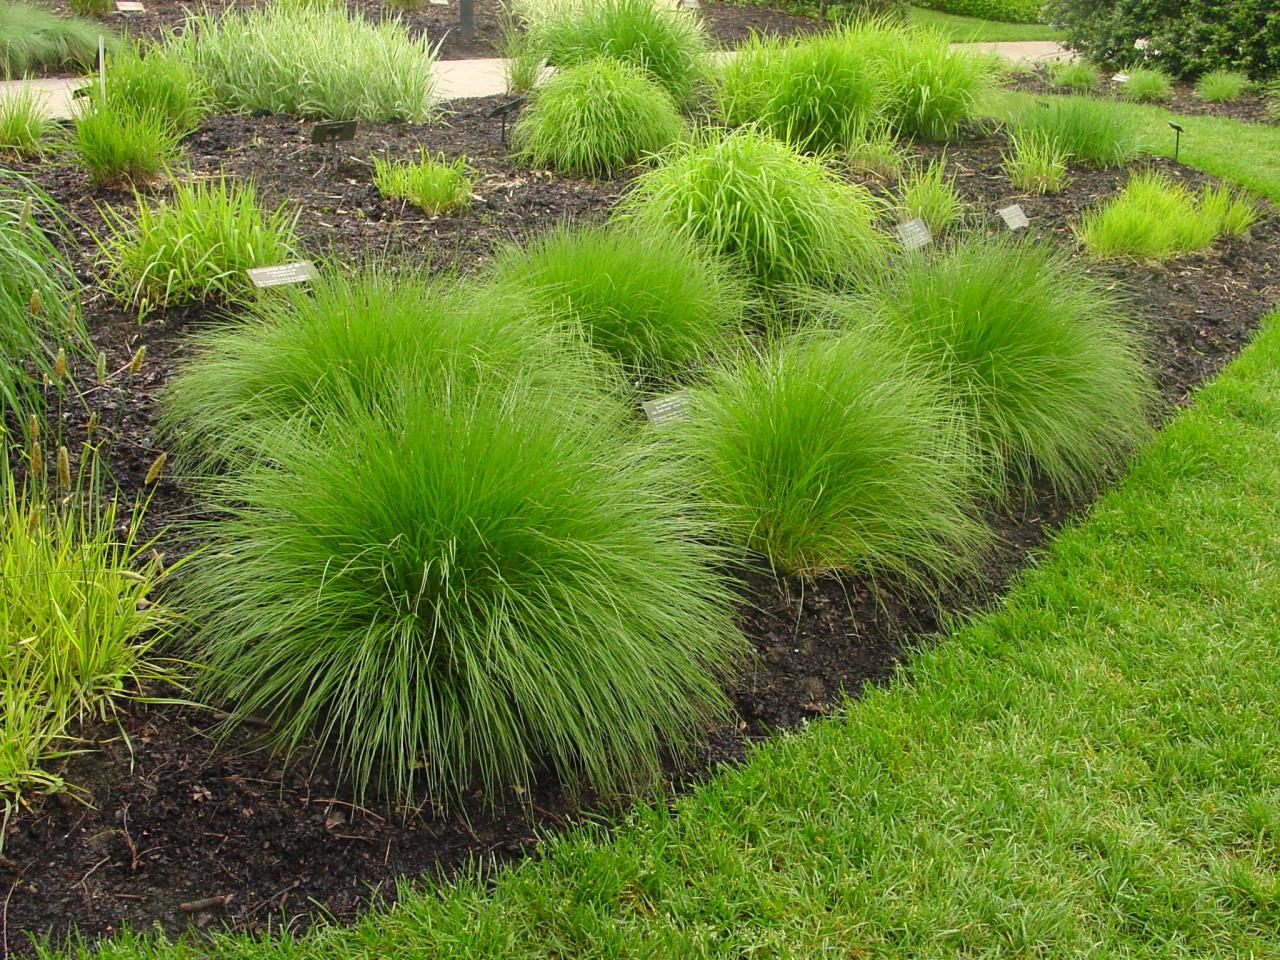 Types of ornamental grasses diy garden projects for Using grasses in garden design